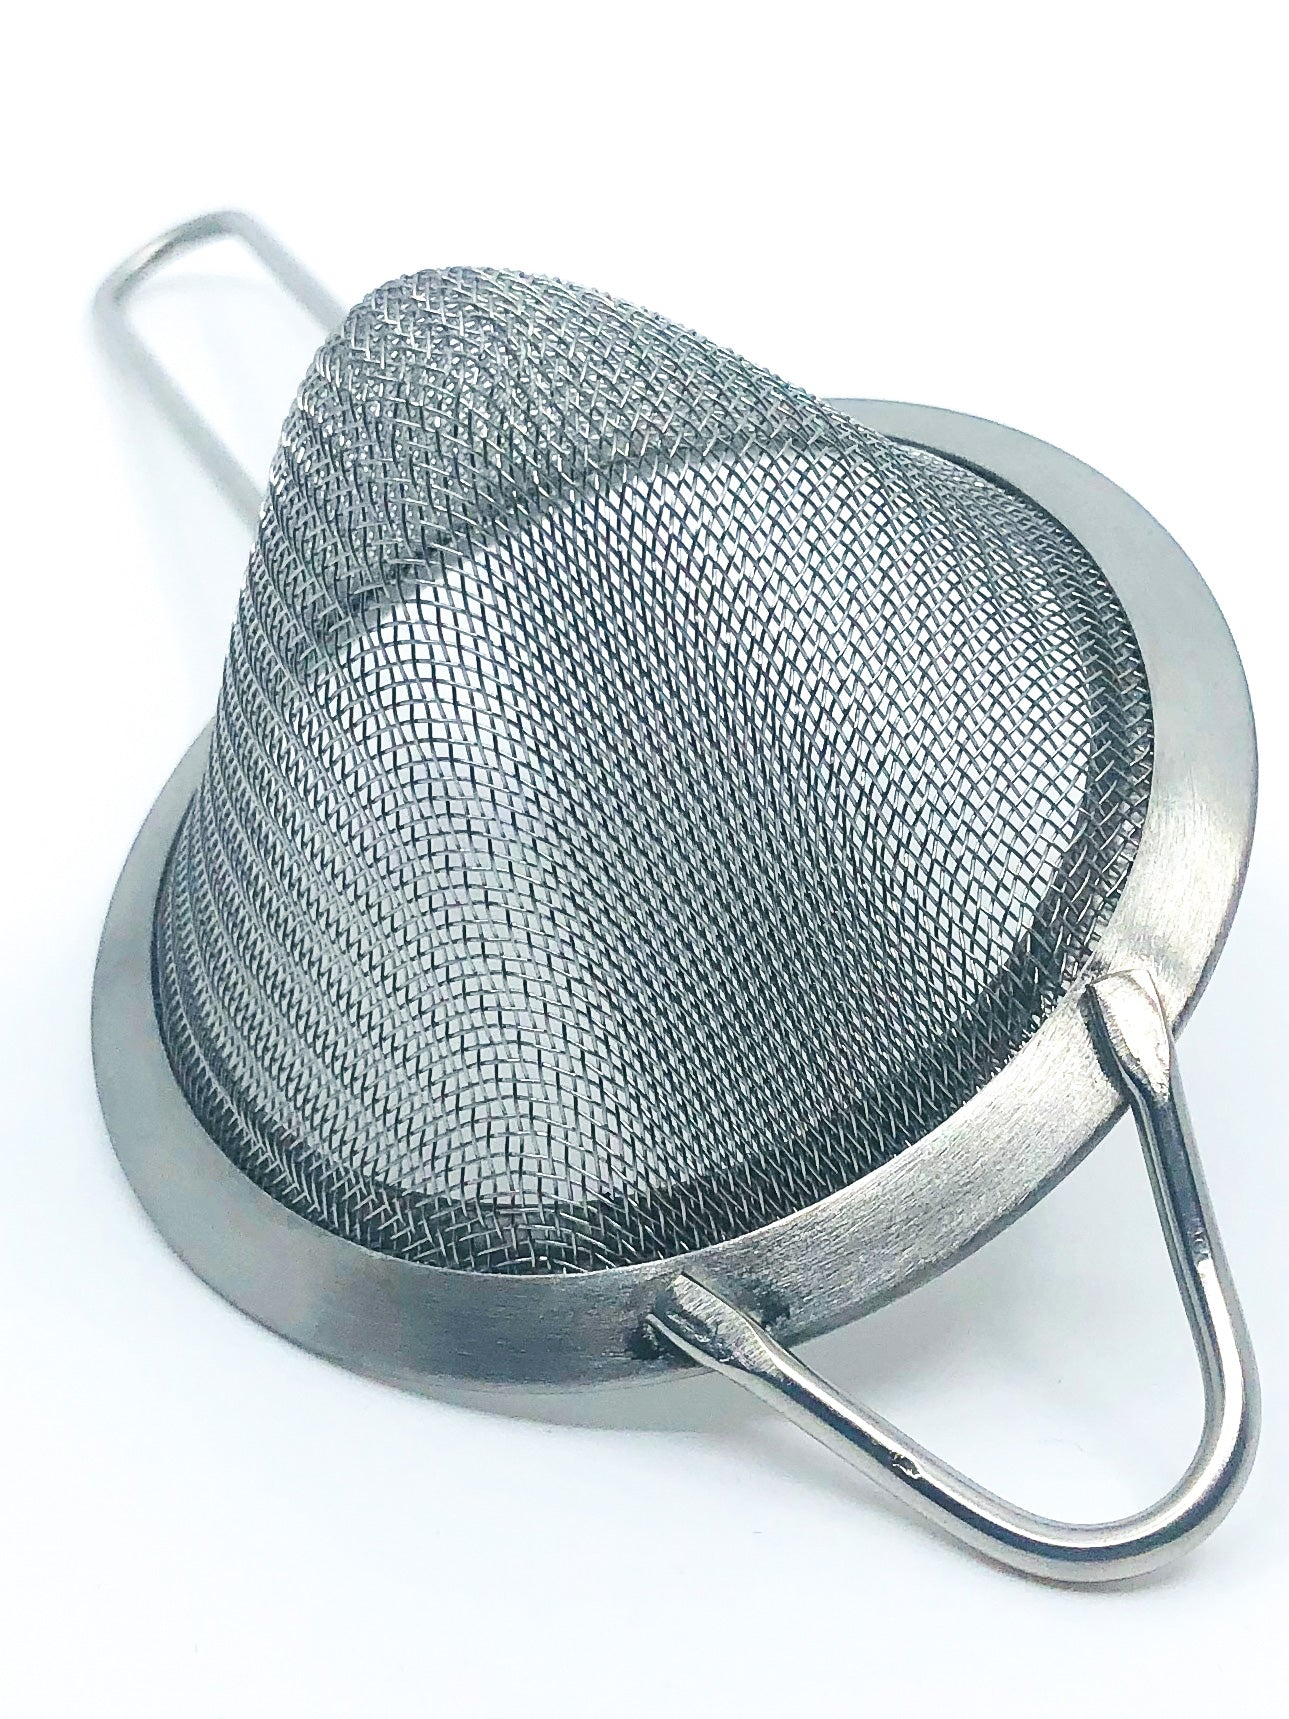 Sticky Chai stainless steel superfine conical mesh tea strainer